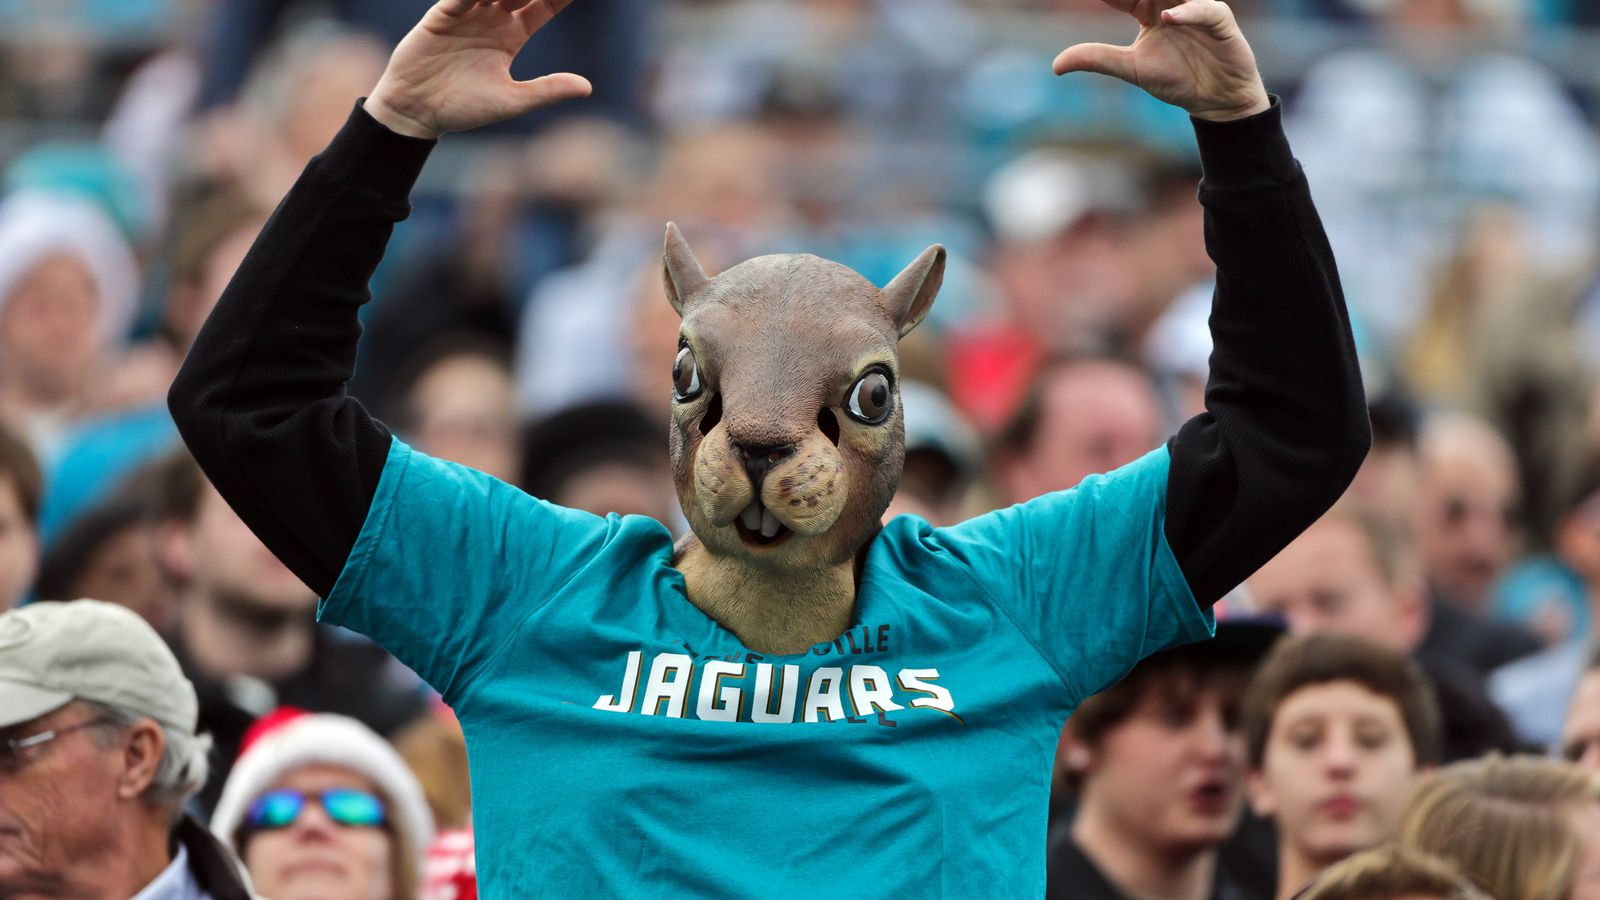 Jaguars 2014 Ticket Prices Are Out Including Pool Cabanas And Field Seats Big Cat Country